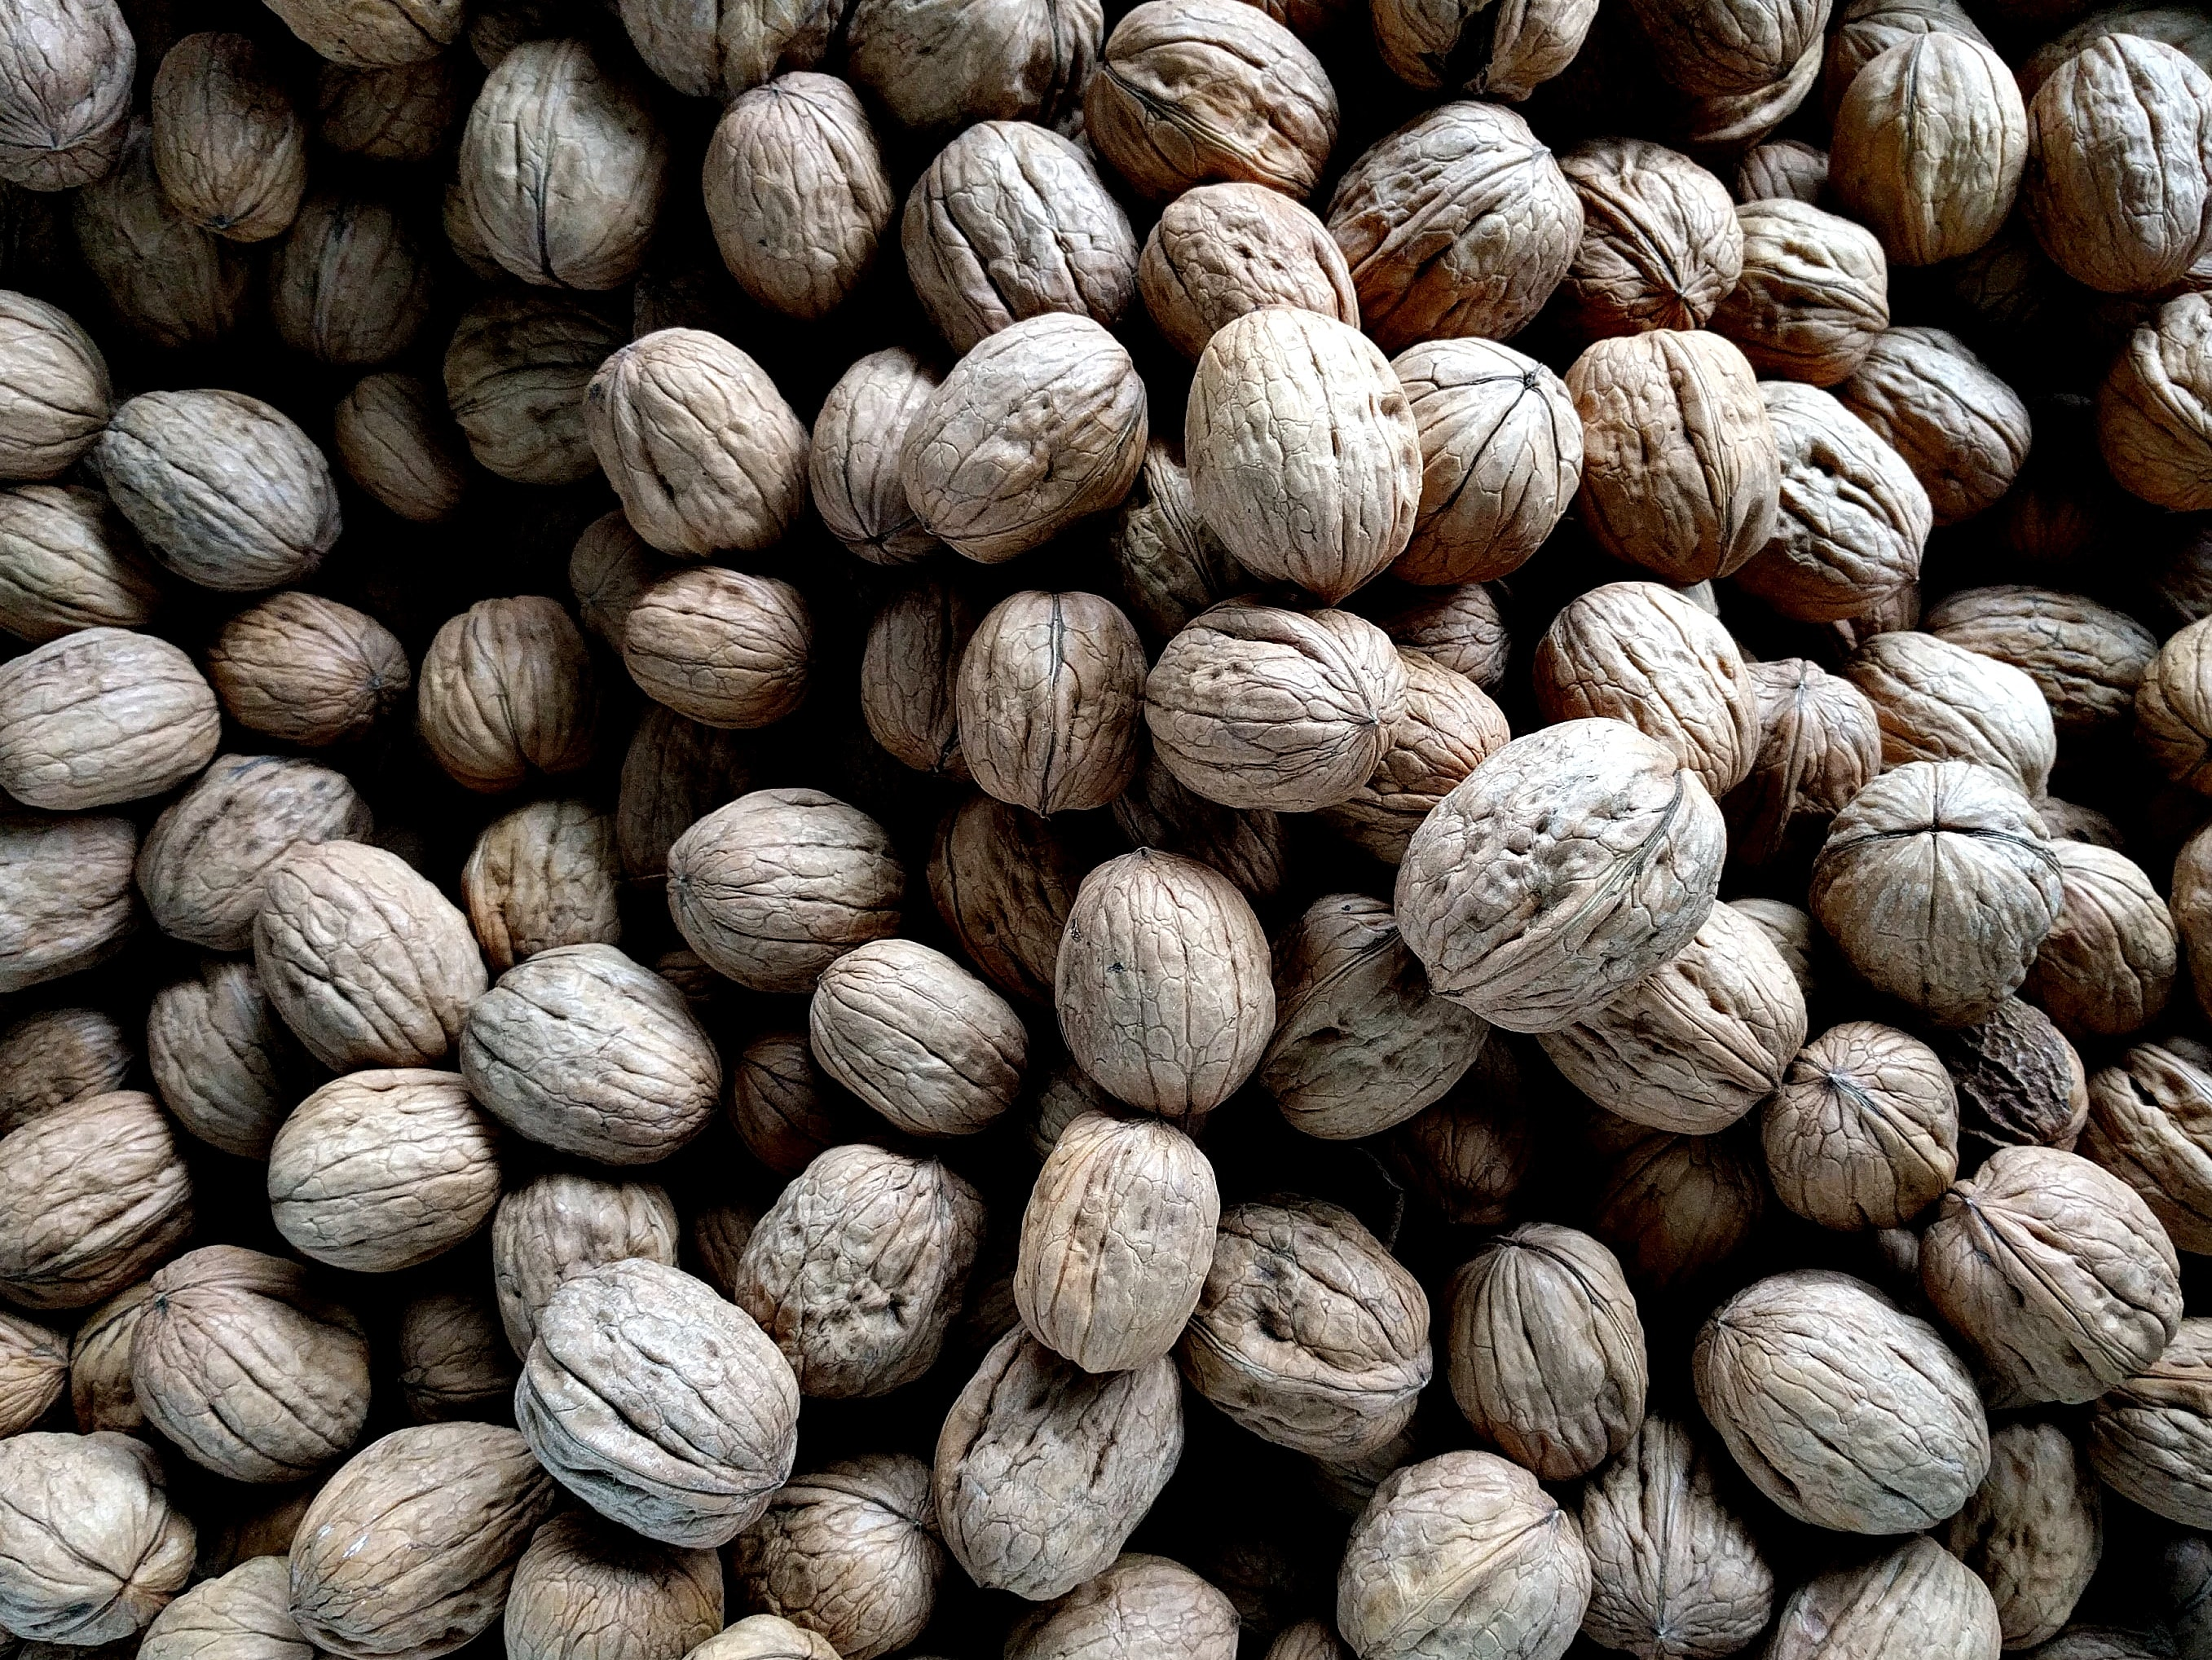 Basket of raw walnuts in their shell